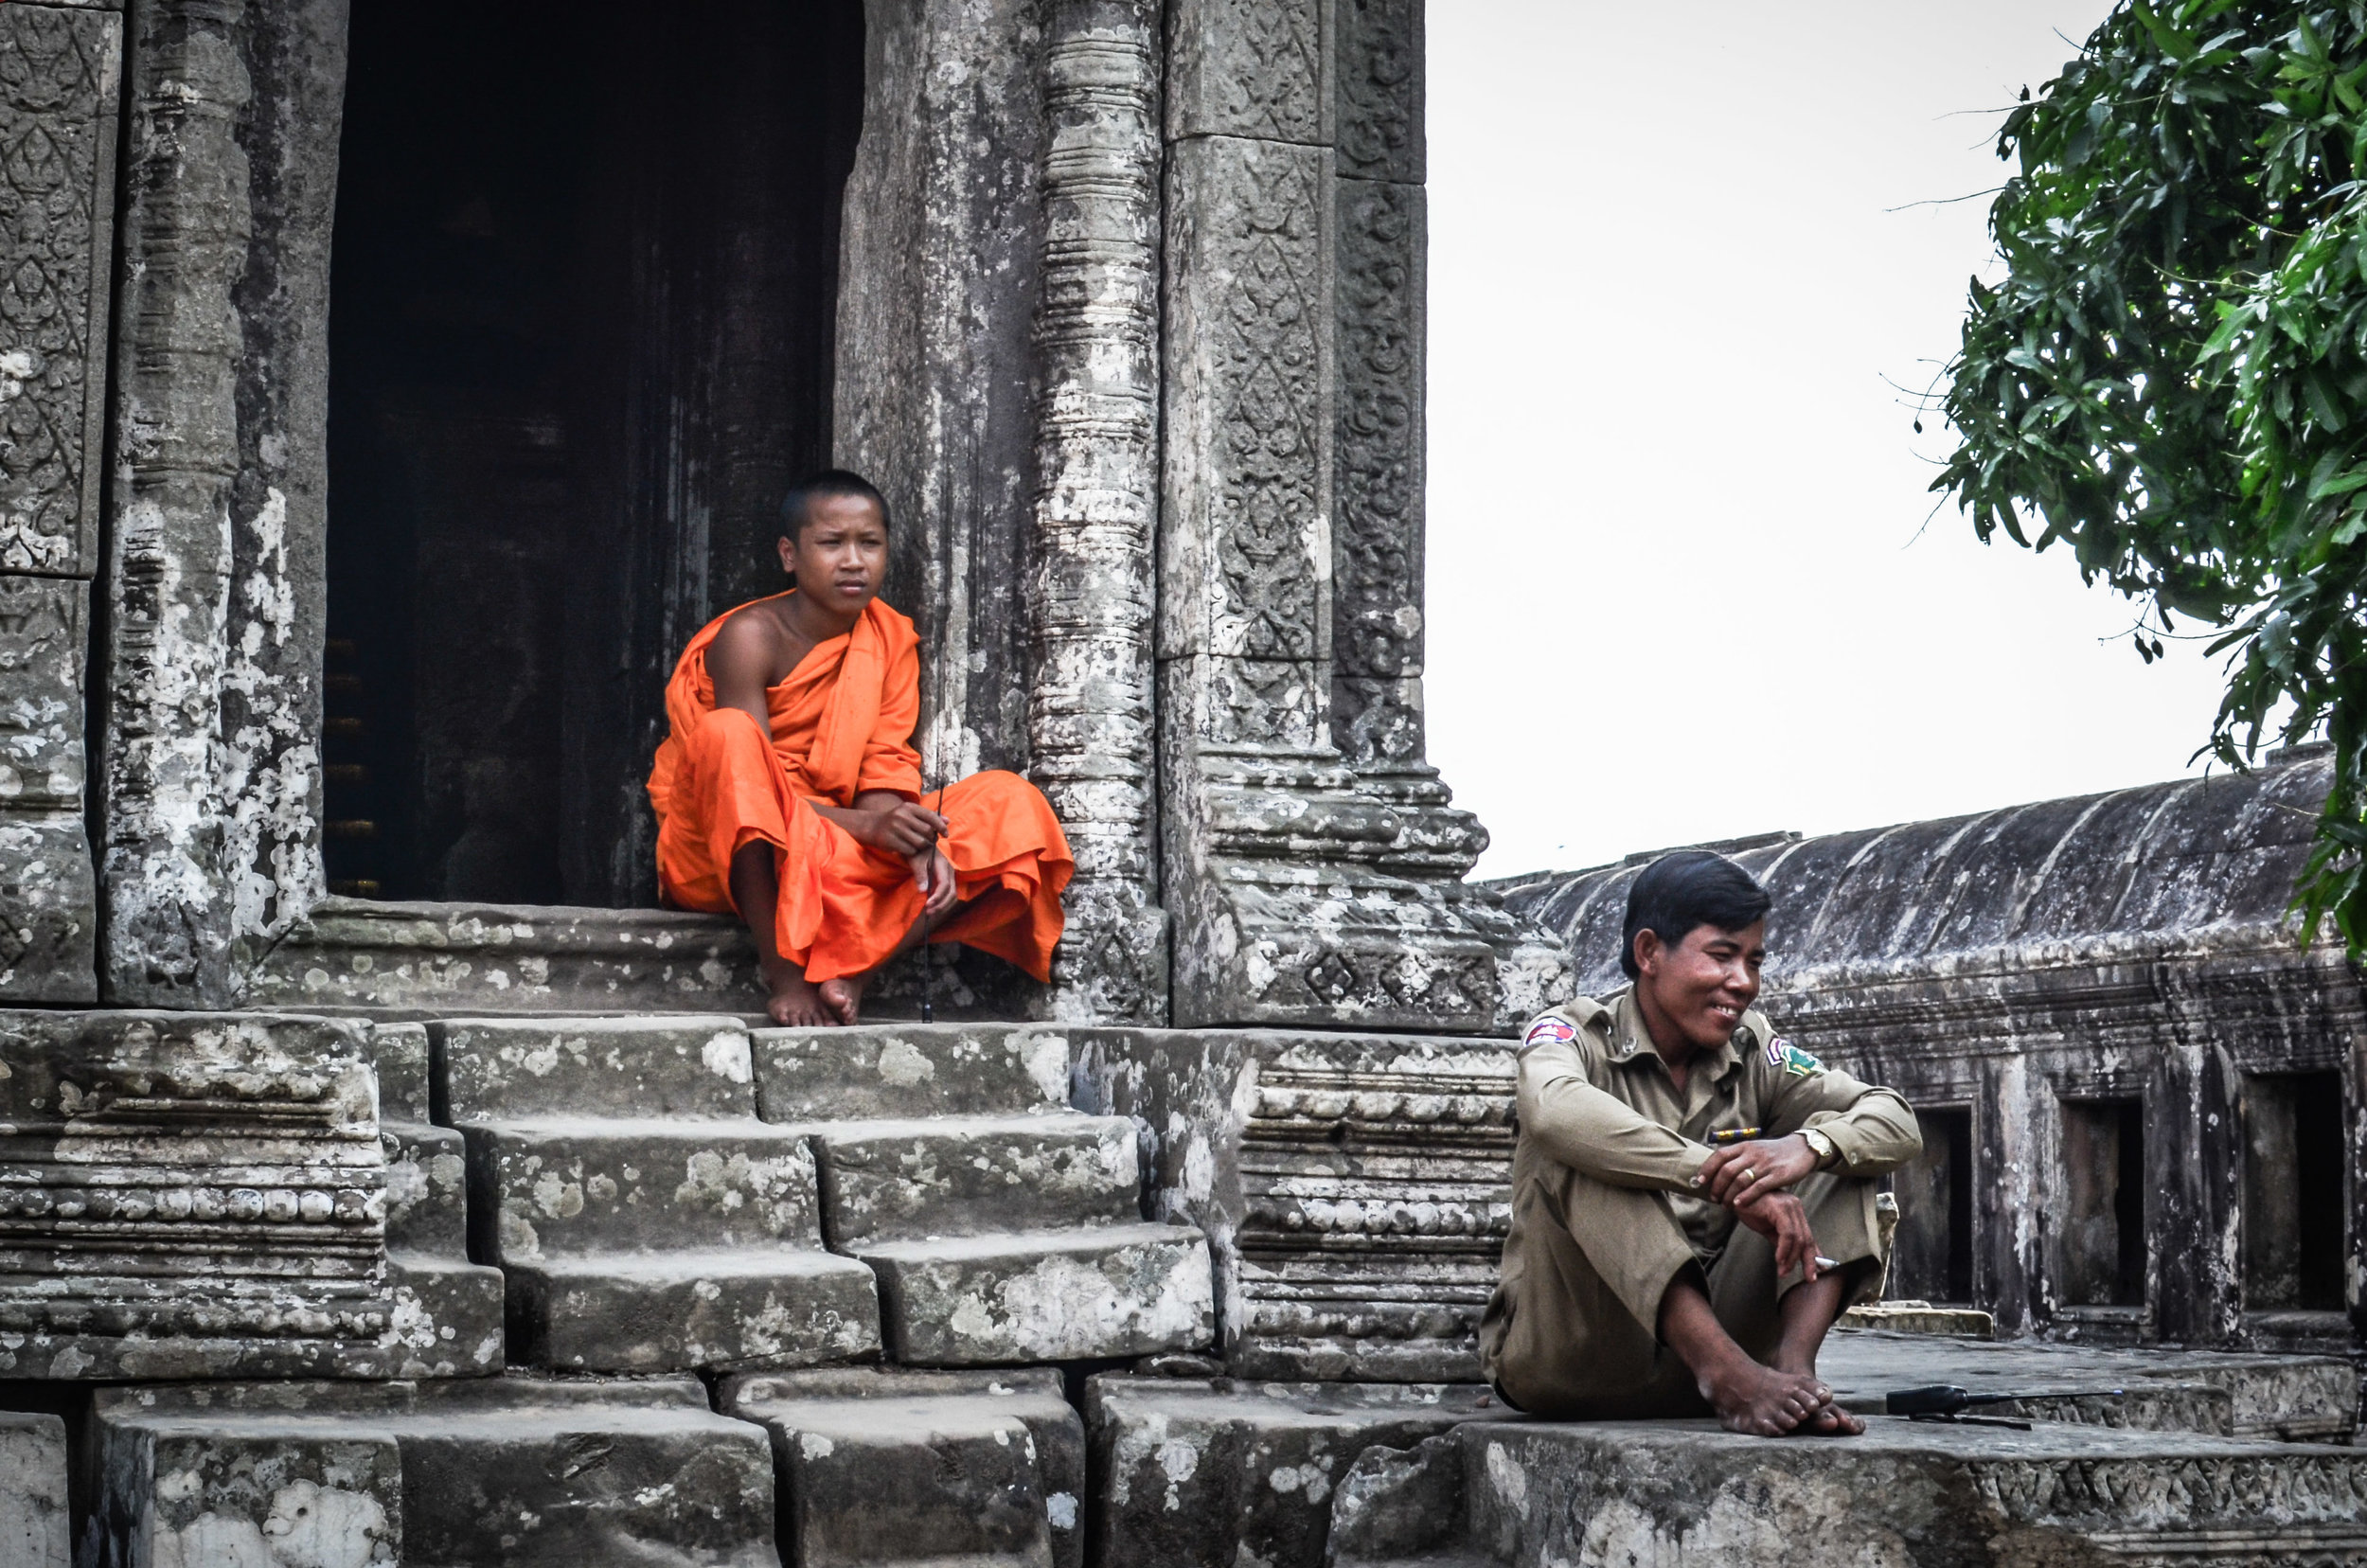 Monk and police officer, Preah Vihear Temple, Cambodia